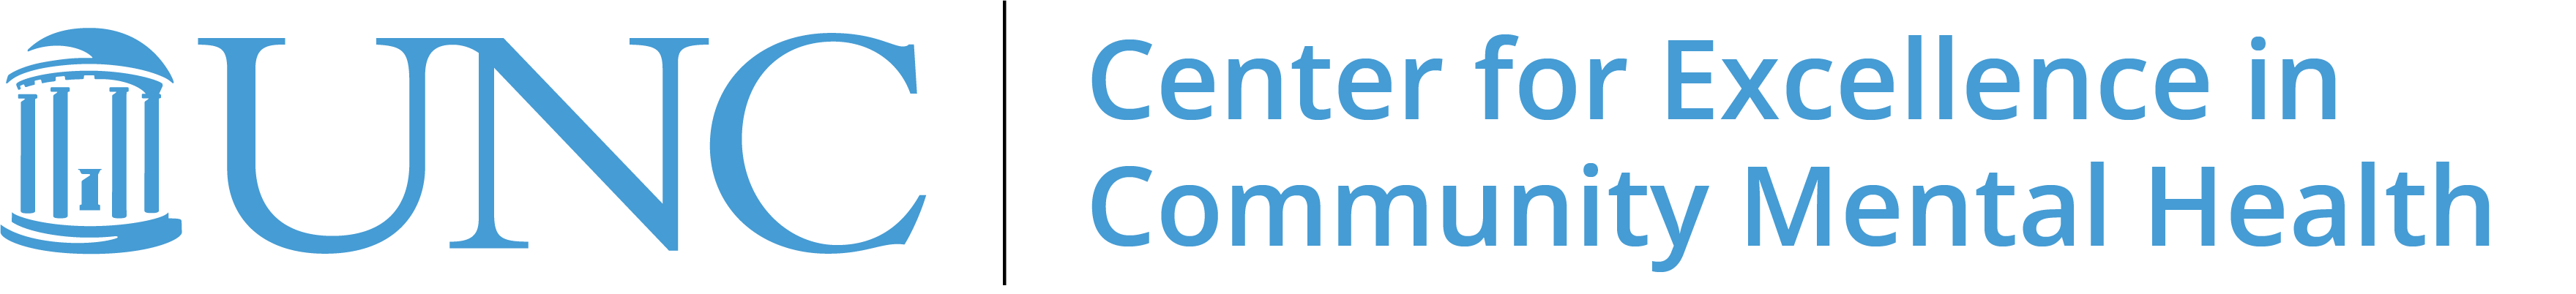 UNC Center for Excellence in Community Mental Health